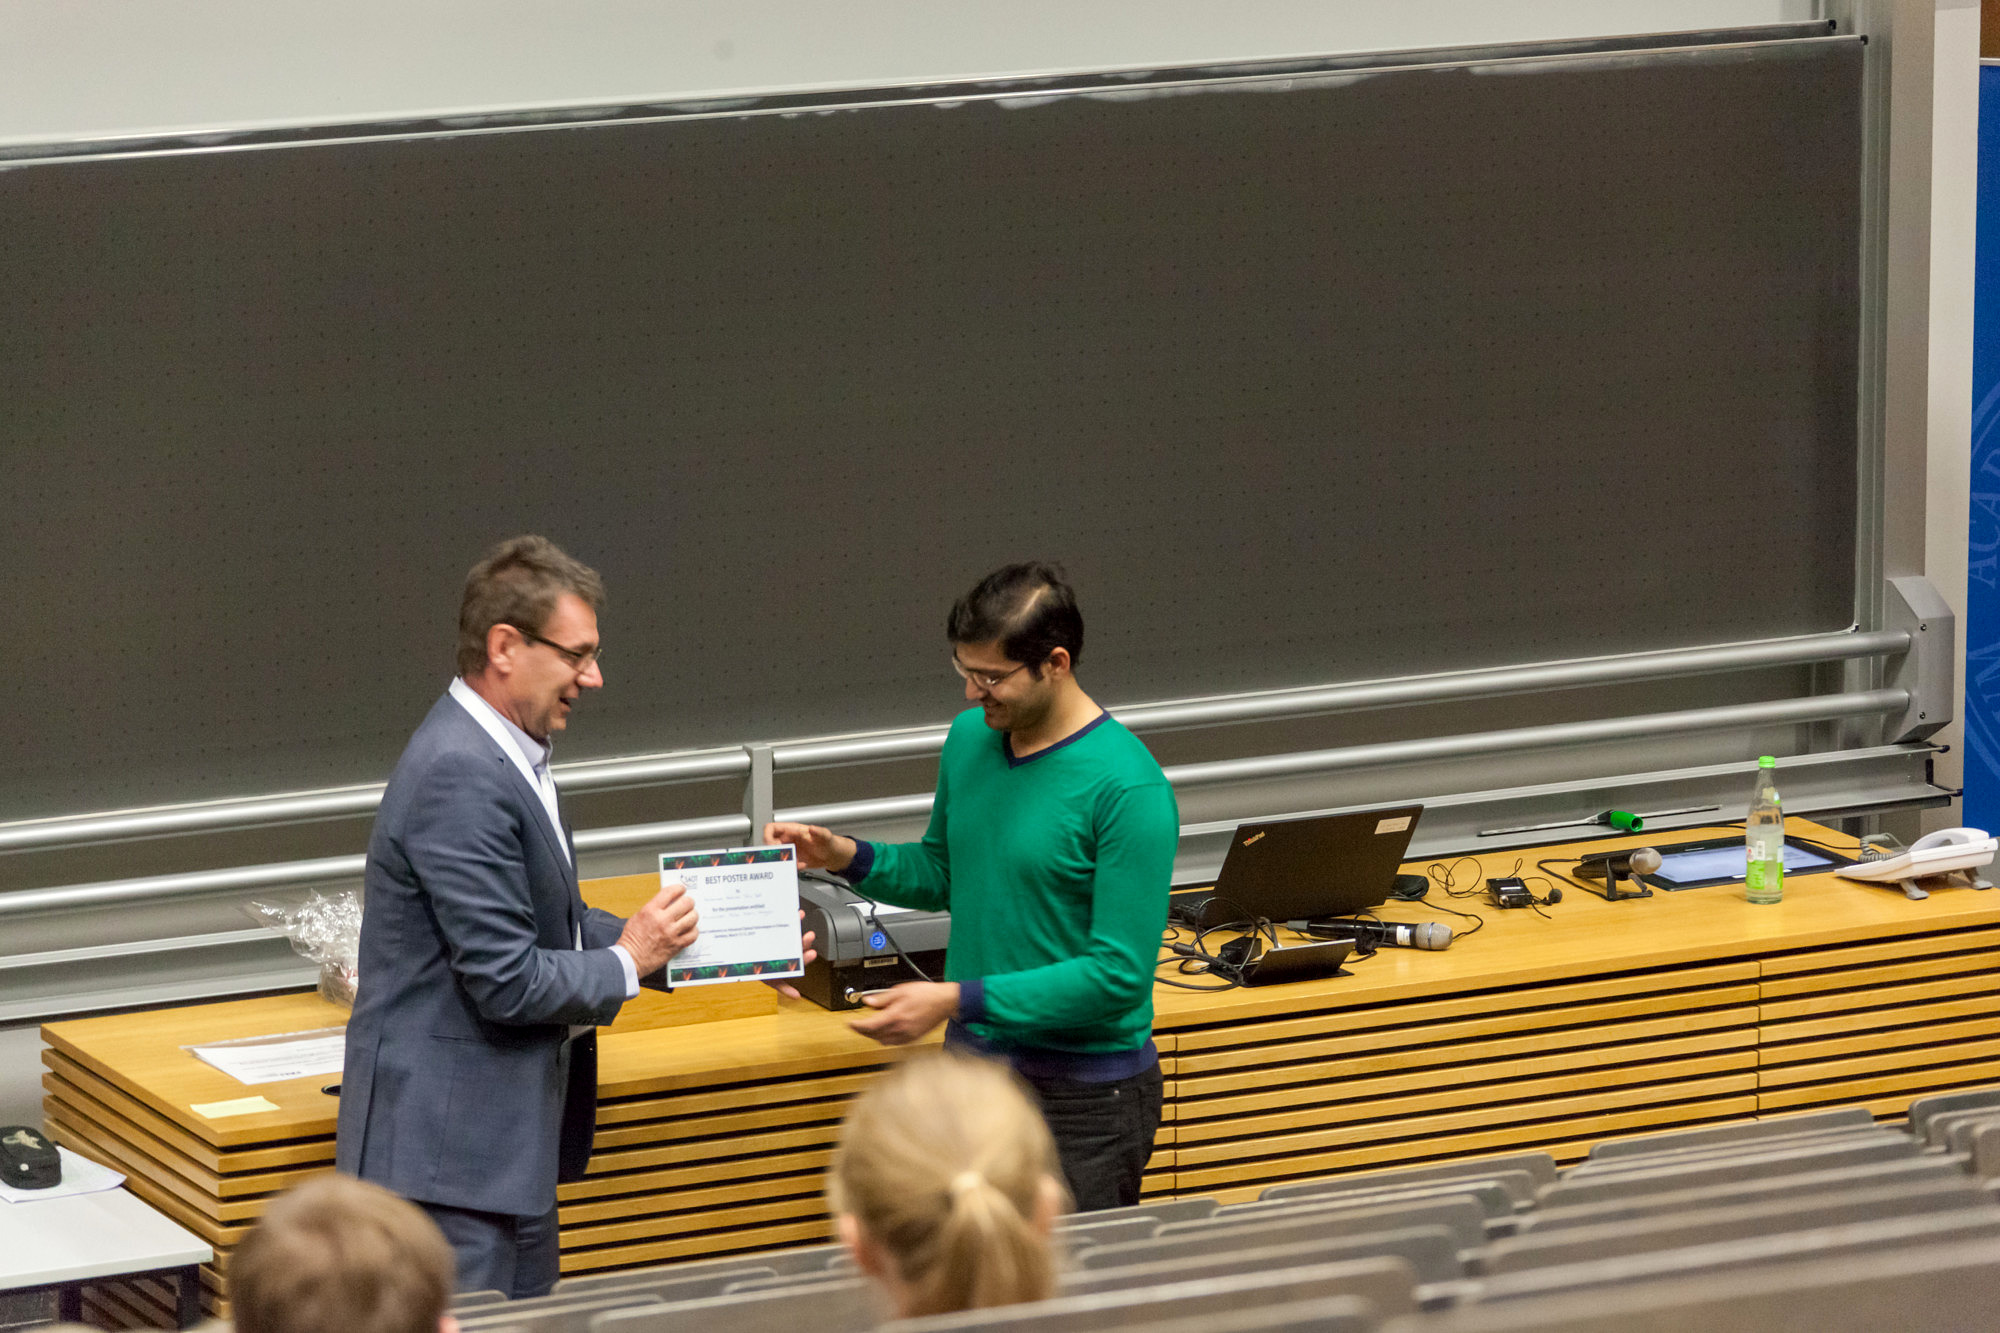 "Muhammad Abdullah Butt (MPL Erlangen) receiving the Best Poster Award for his presentation entitled ""Microscopic Müller Matrix Analysis""."